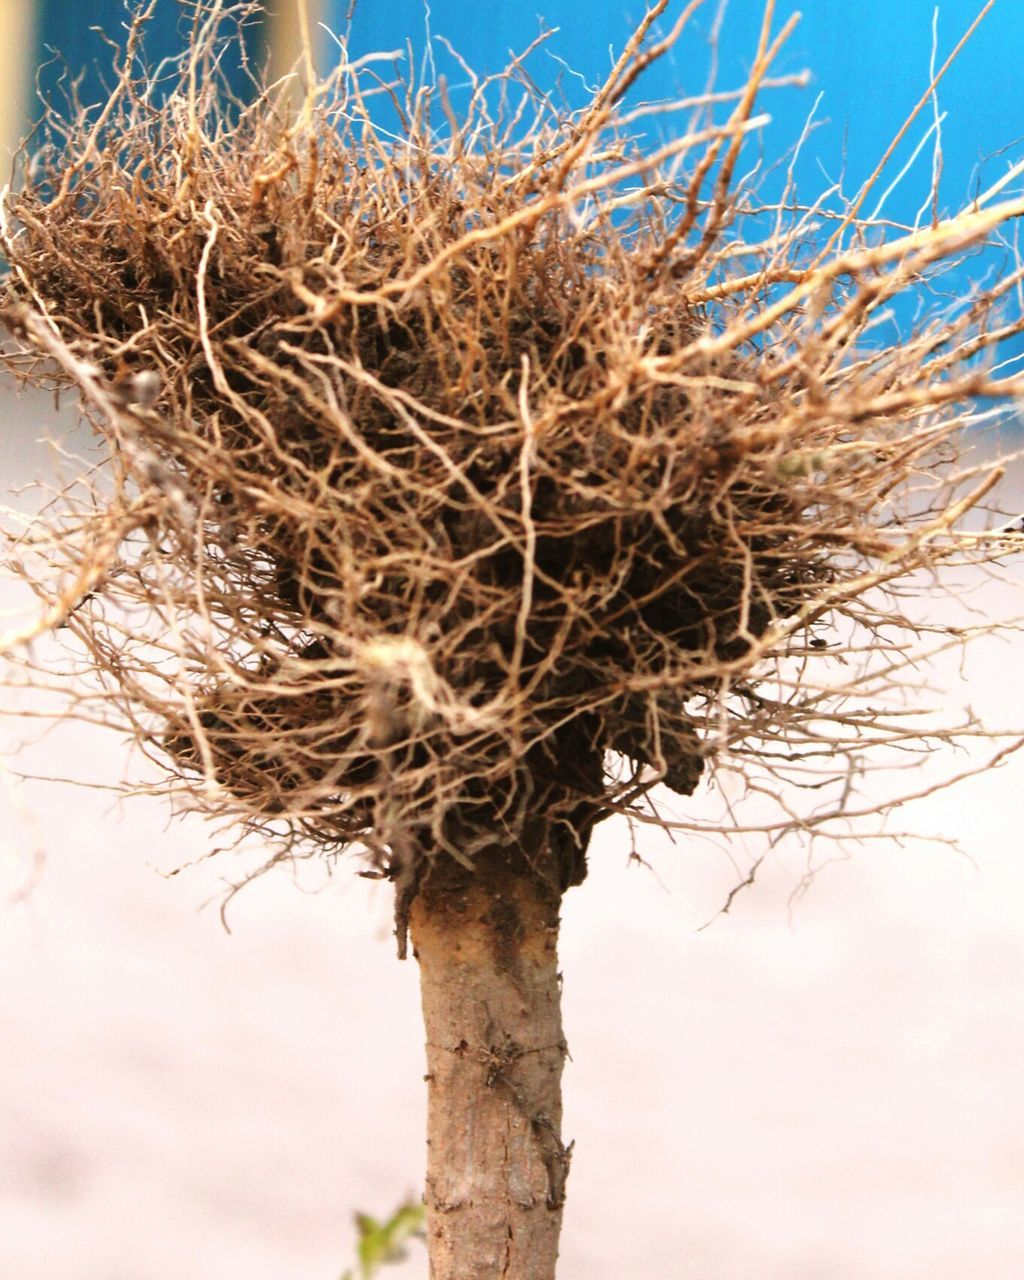 no people, day, nature, outdoors, dried plant, sky, close-up, beauty in nature, bare tree, branch